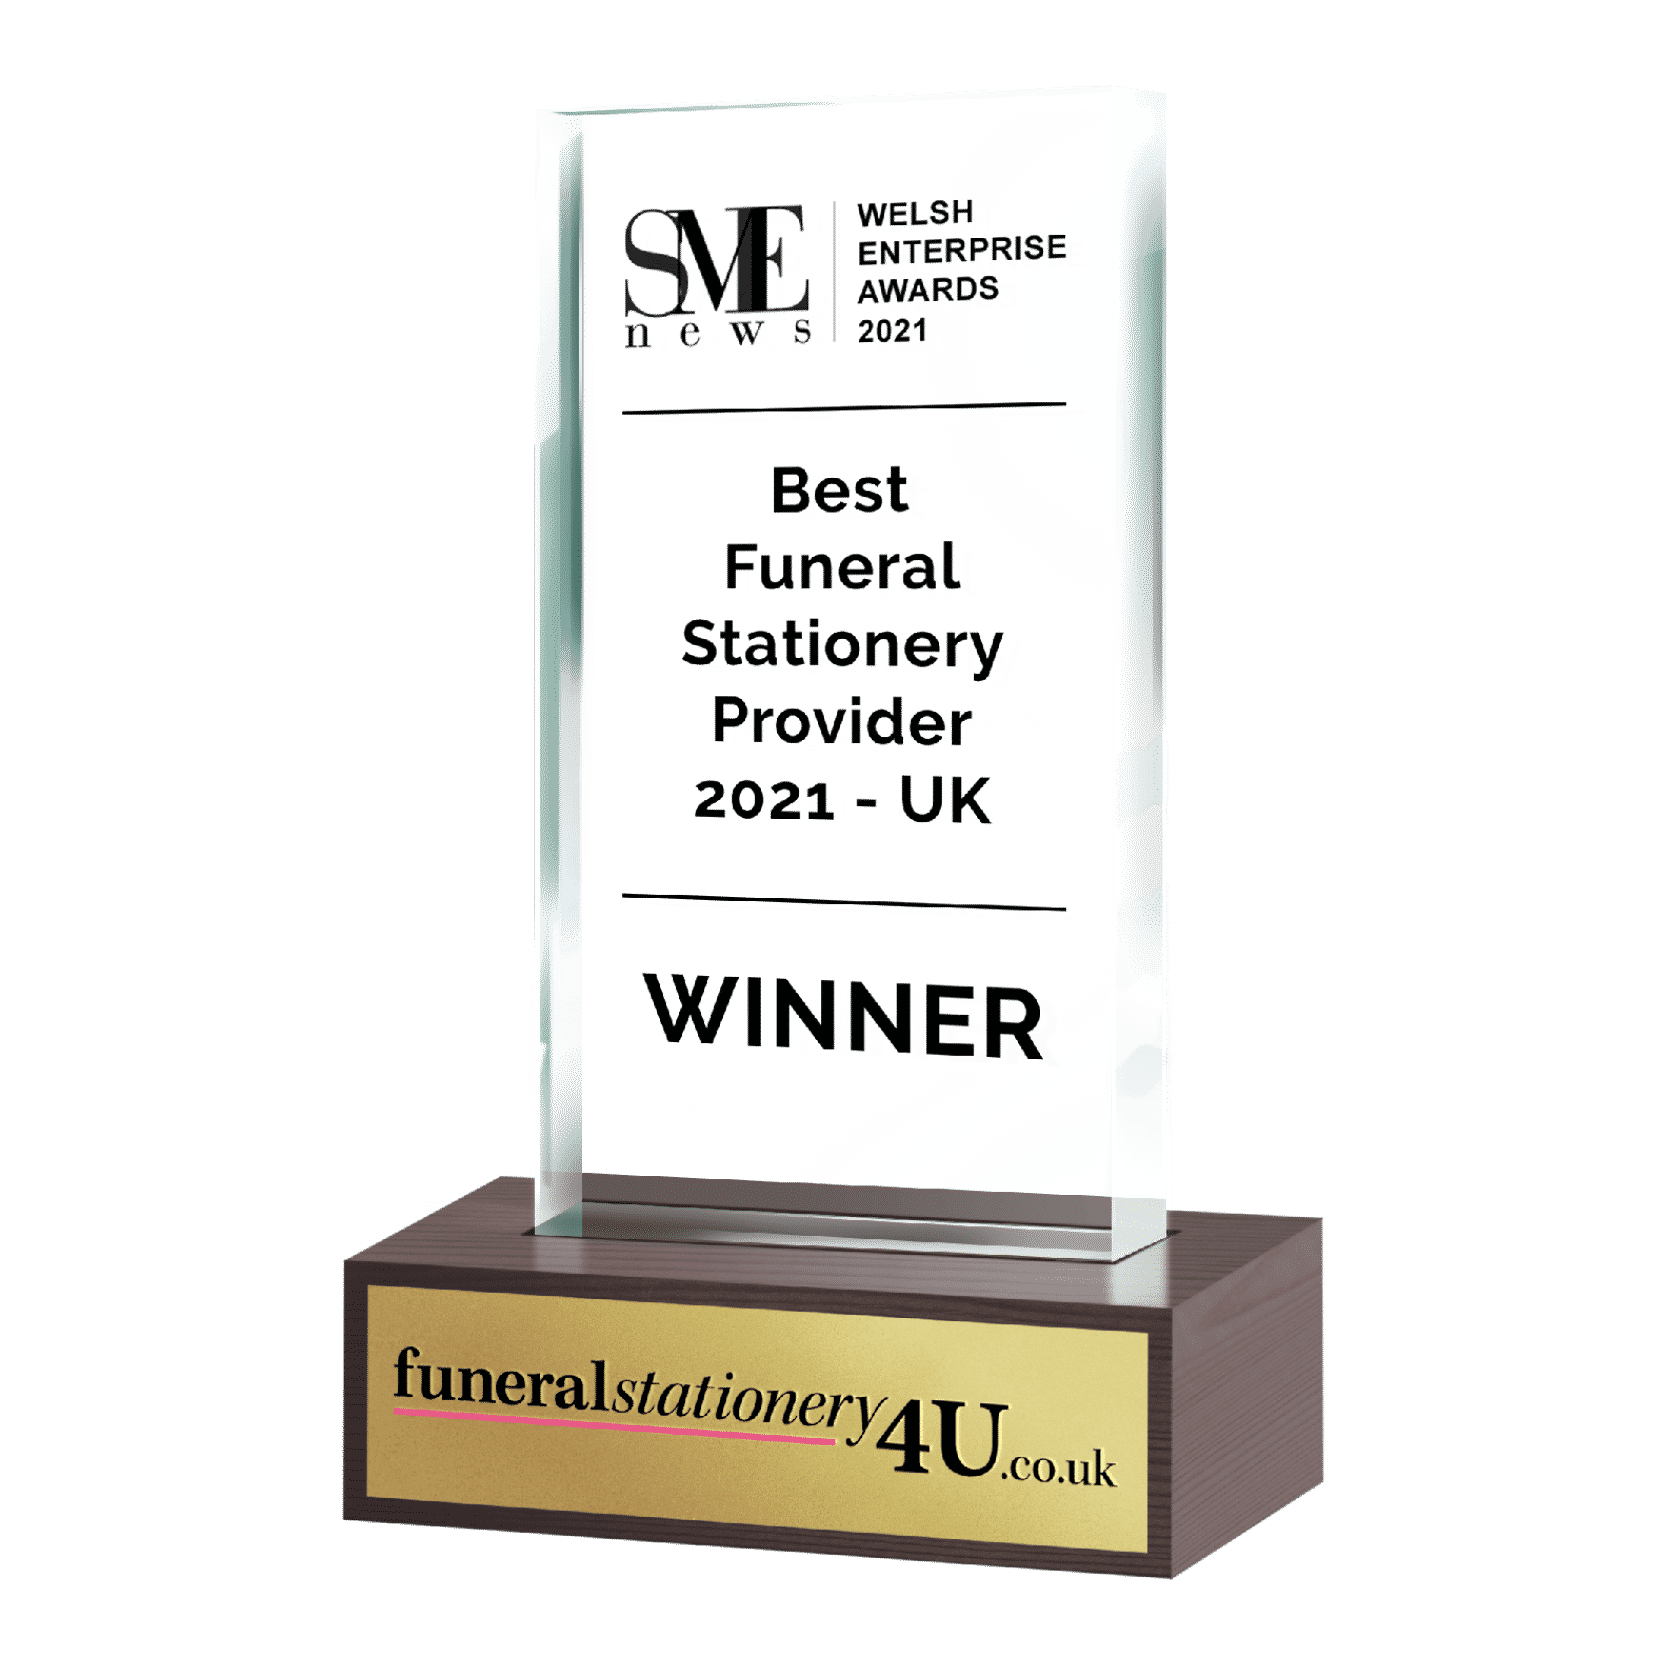 Best funeral stationery provider award 2021